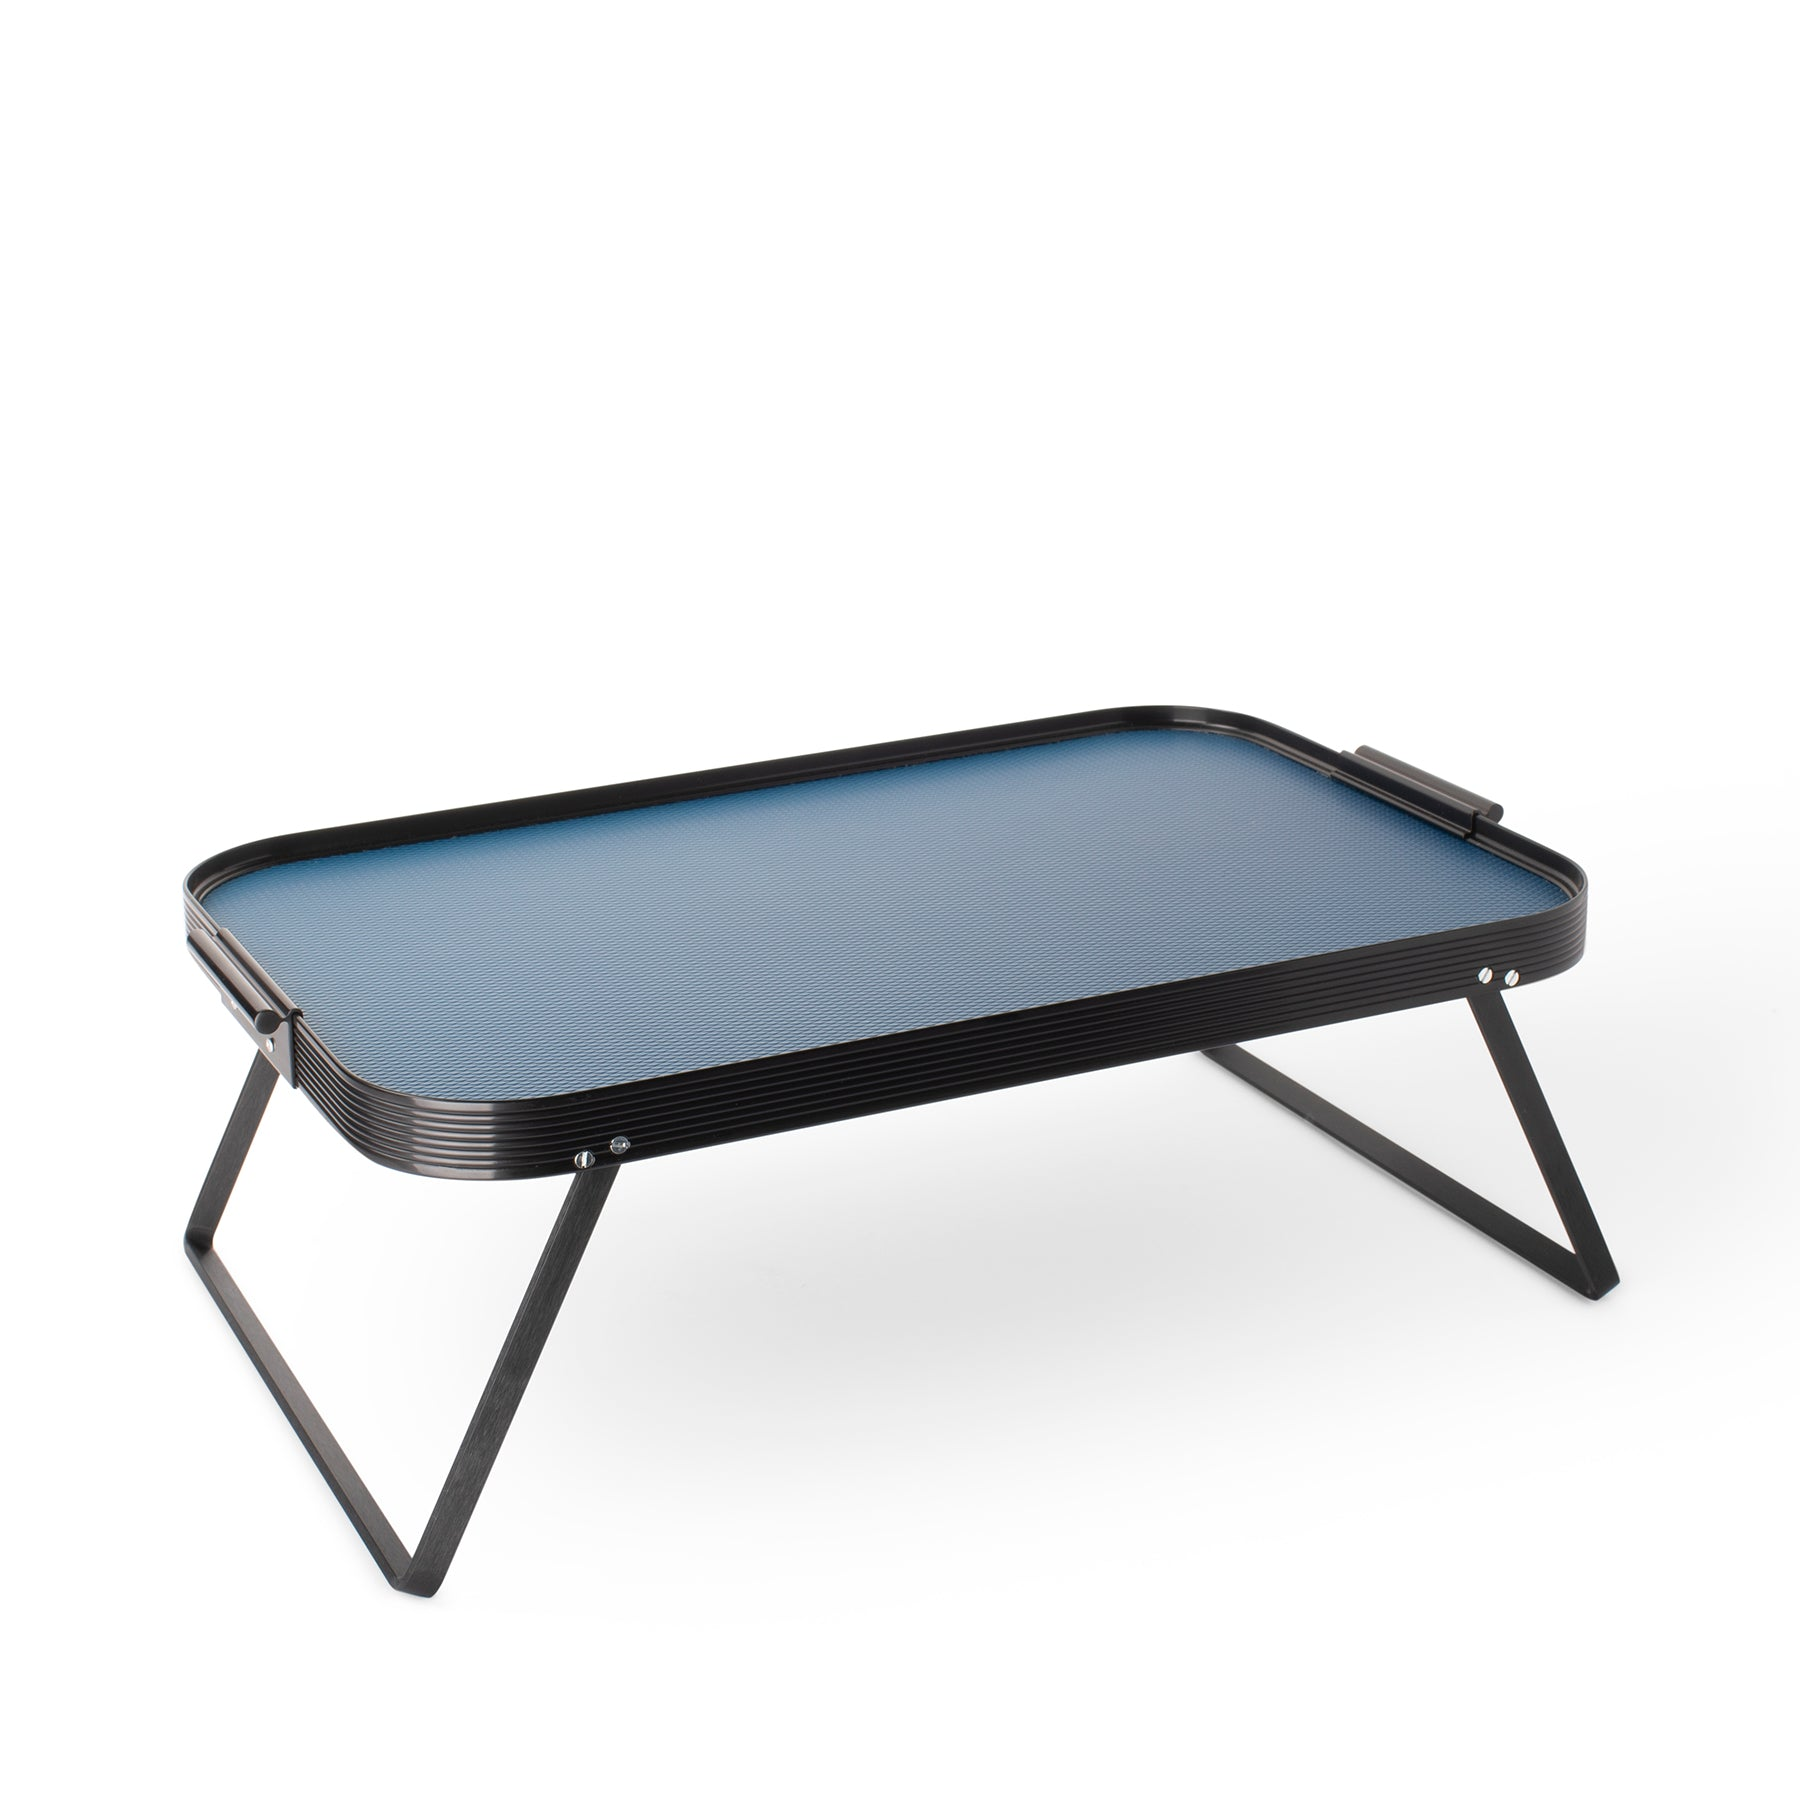 Diamond Bed Tray in Royal Blue Zoom Image 1